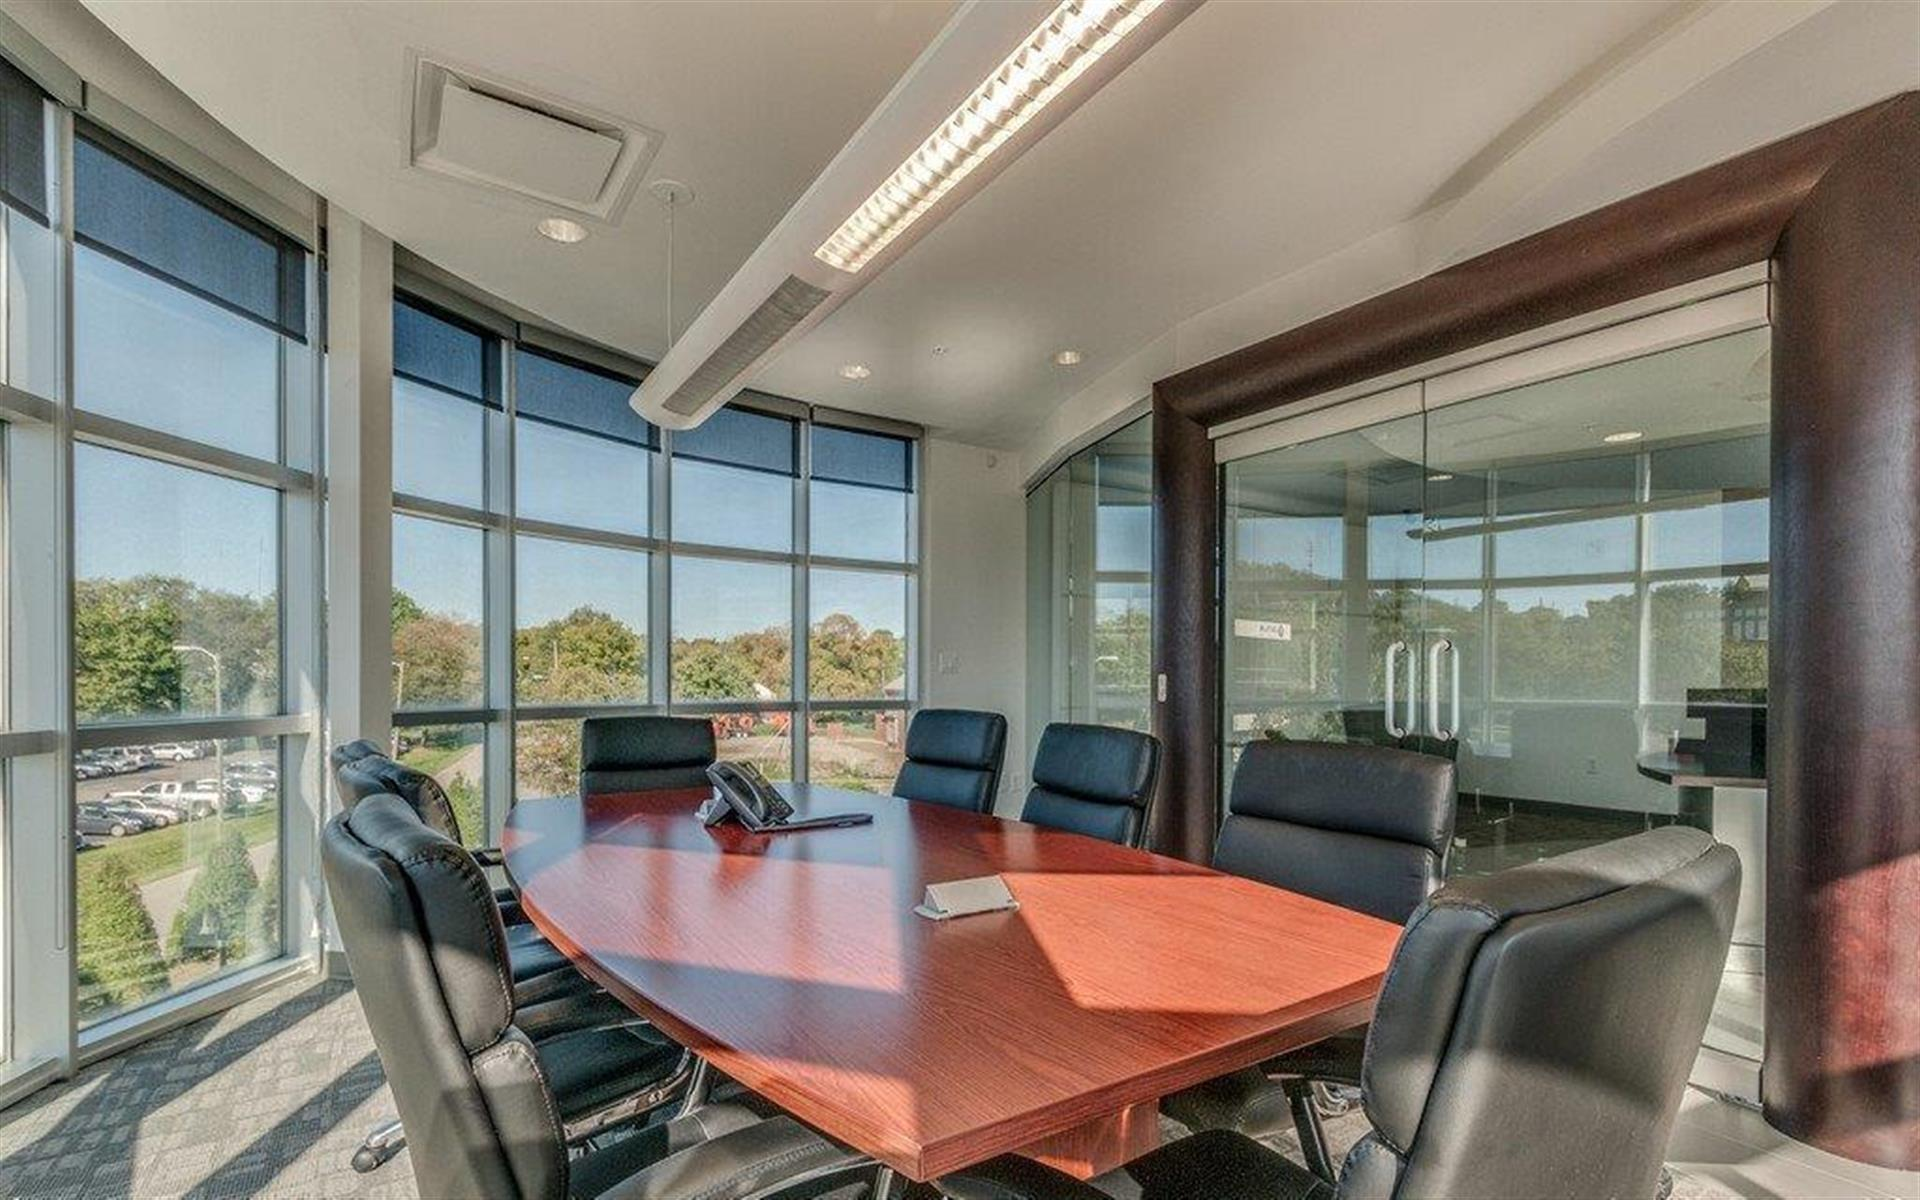 Green Hills Office Suites - Large Meeting Room (342)